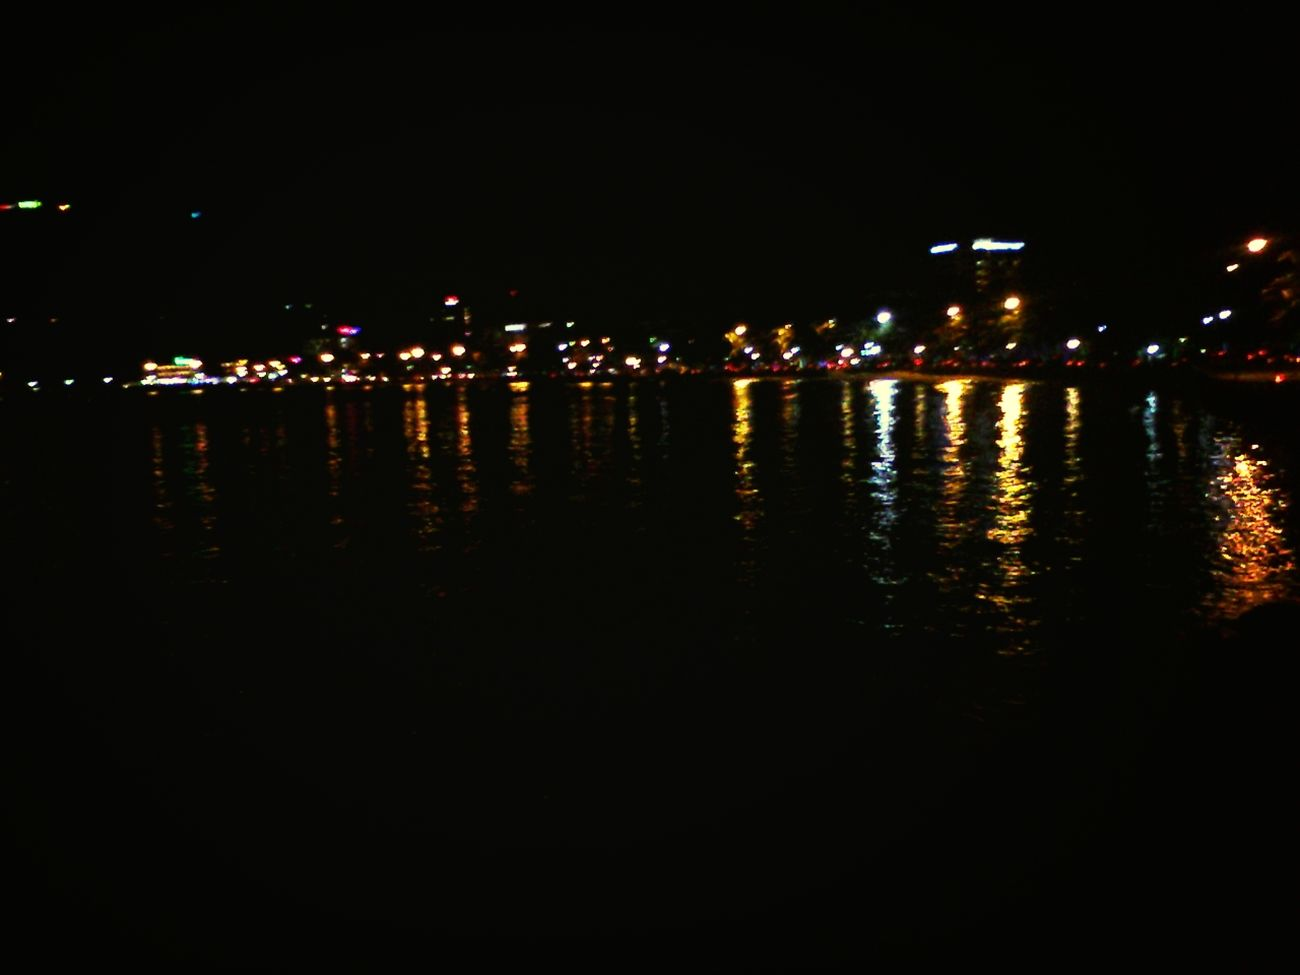 Mycity Beachatnight